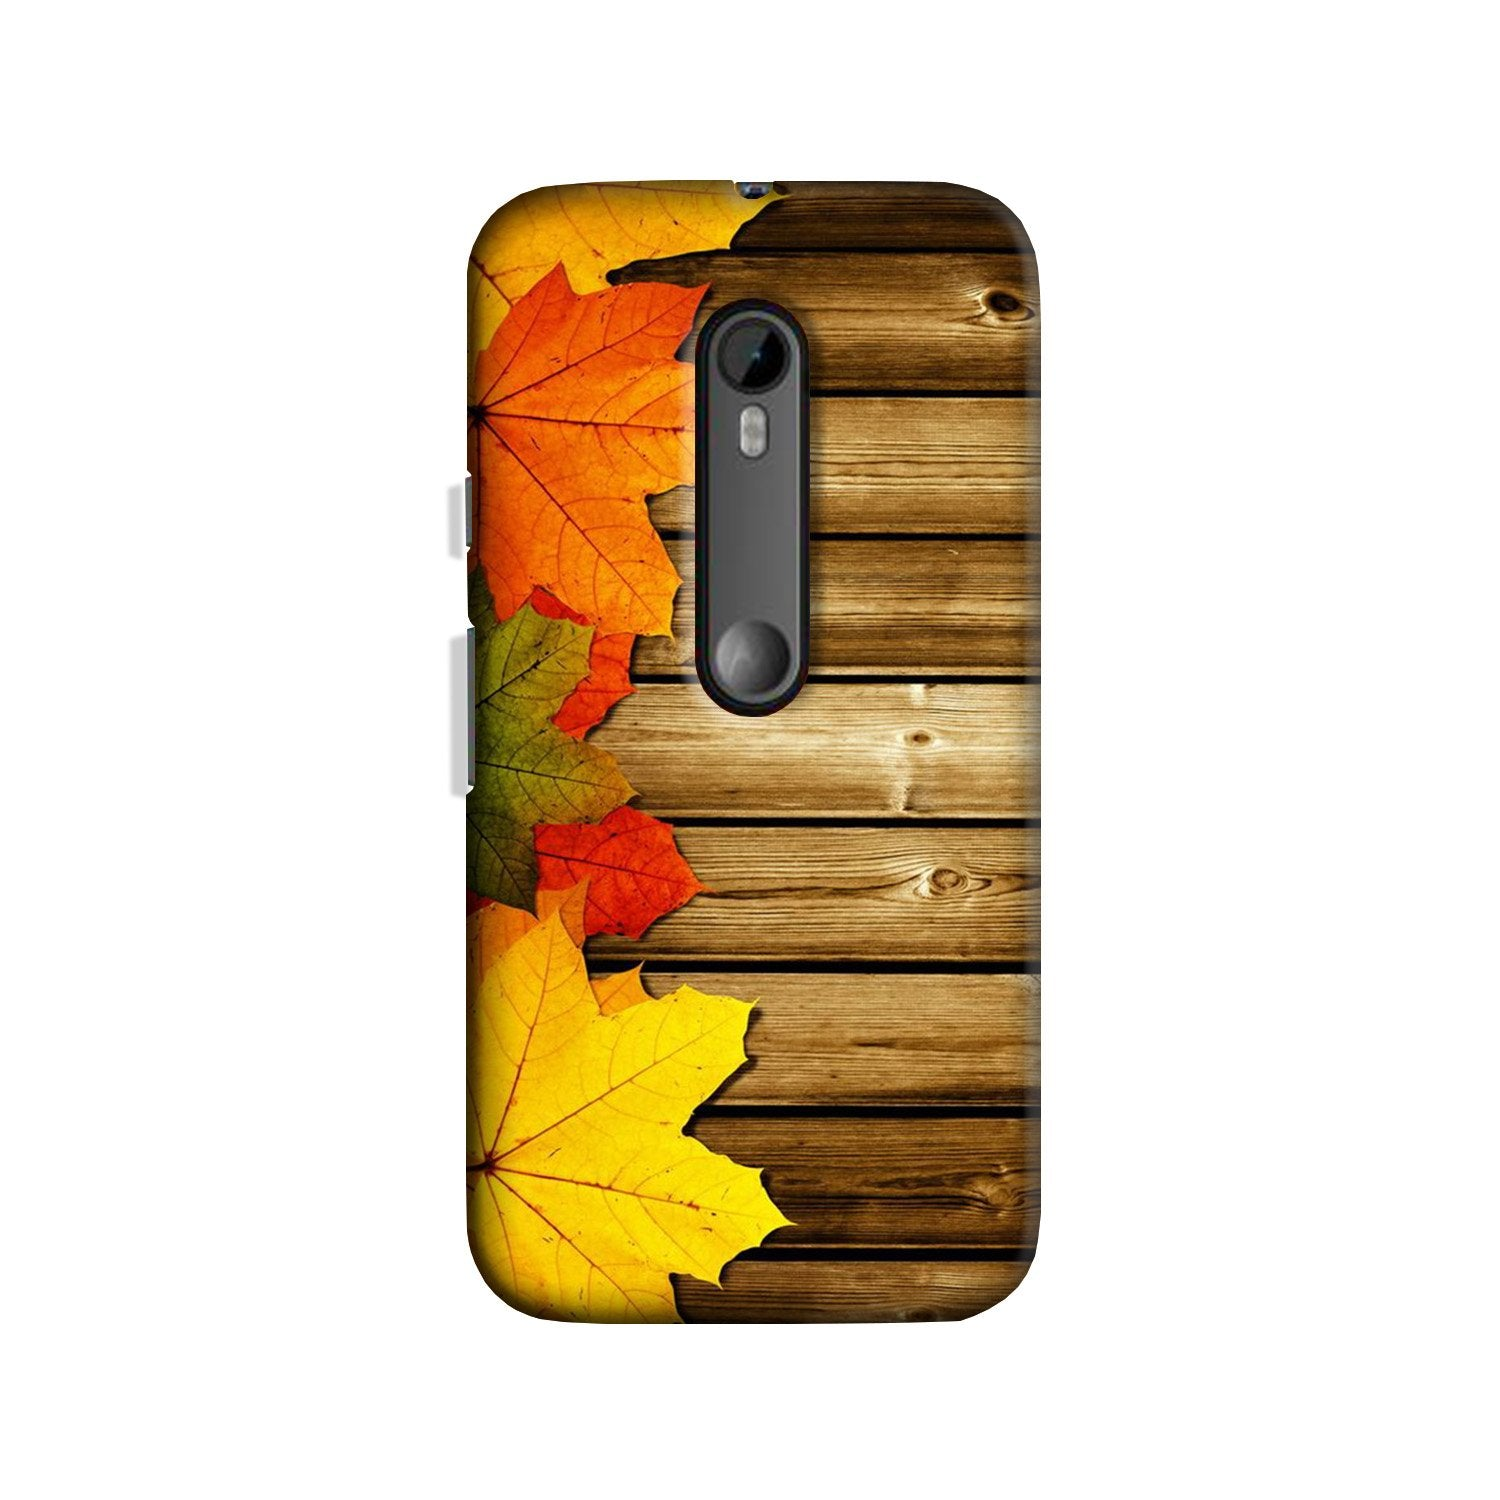 Wooden look Case for Moto G 3rd Gen